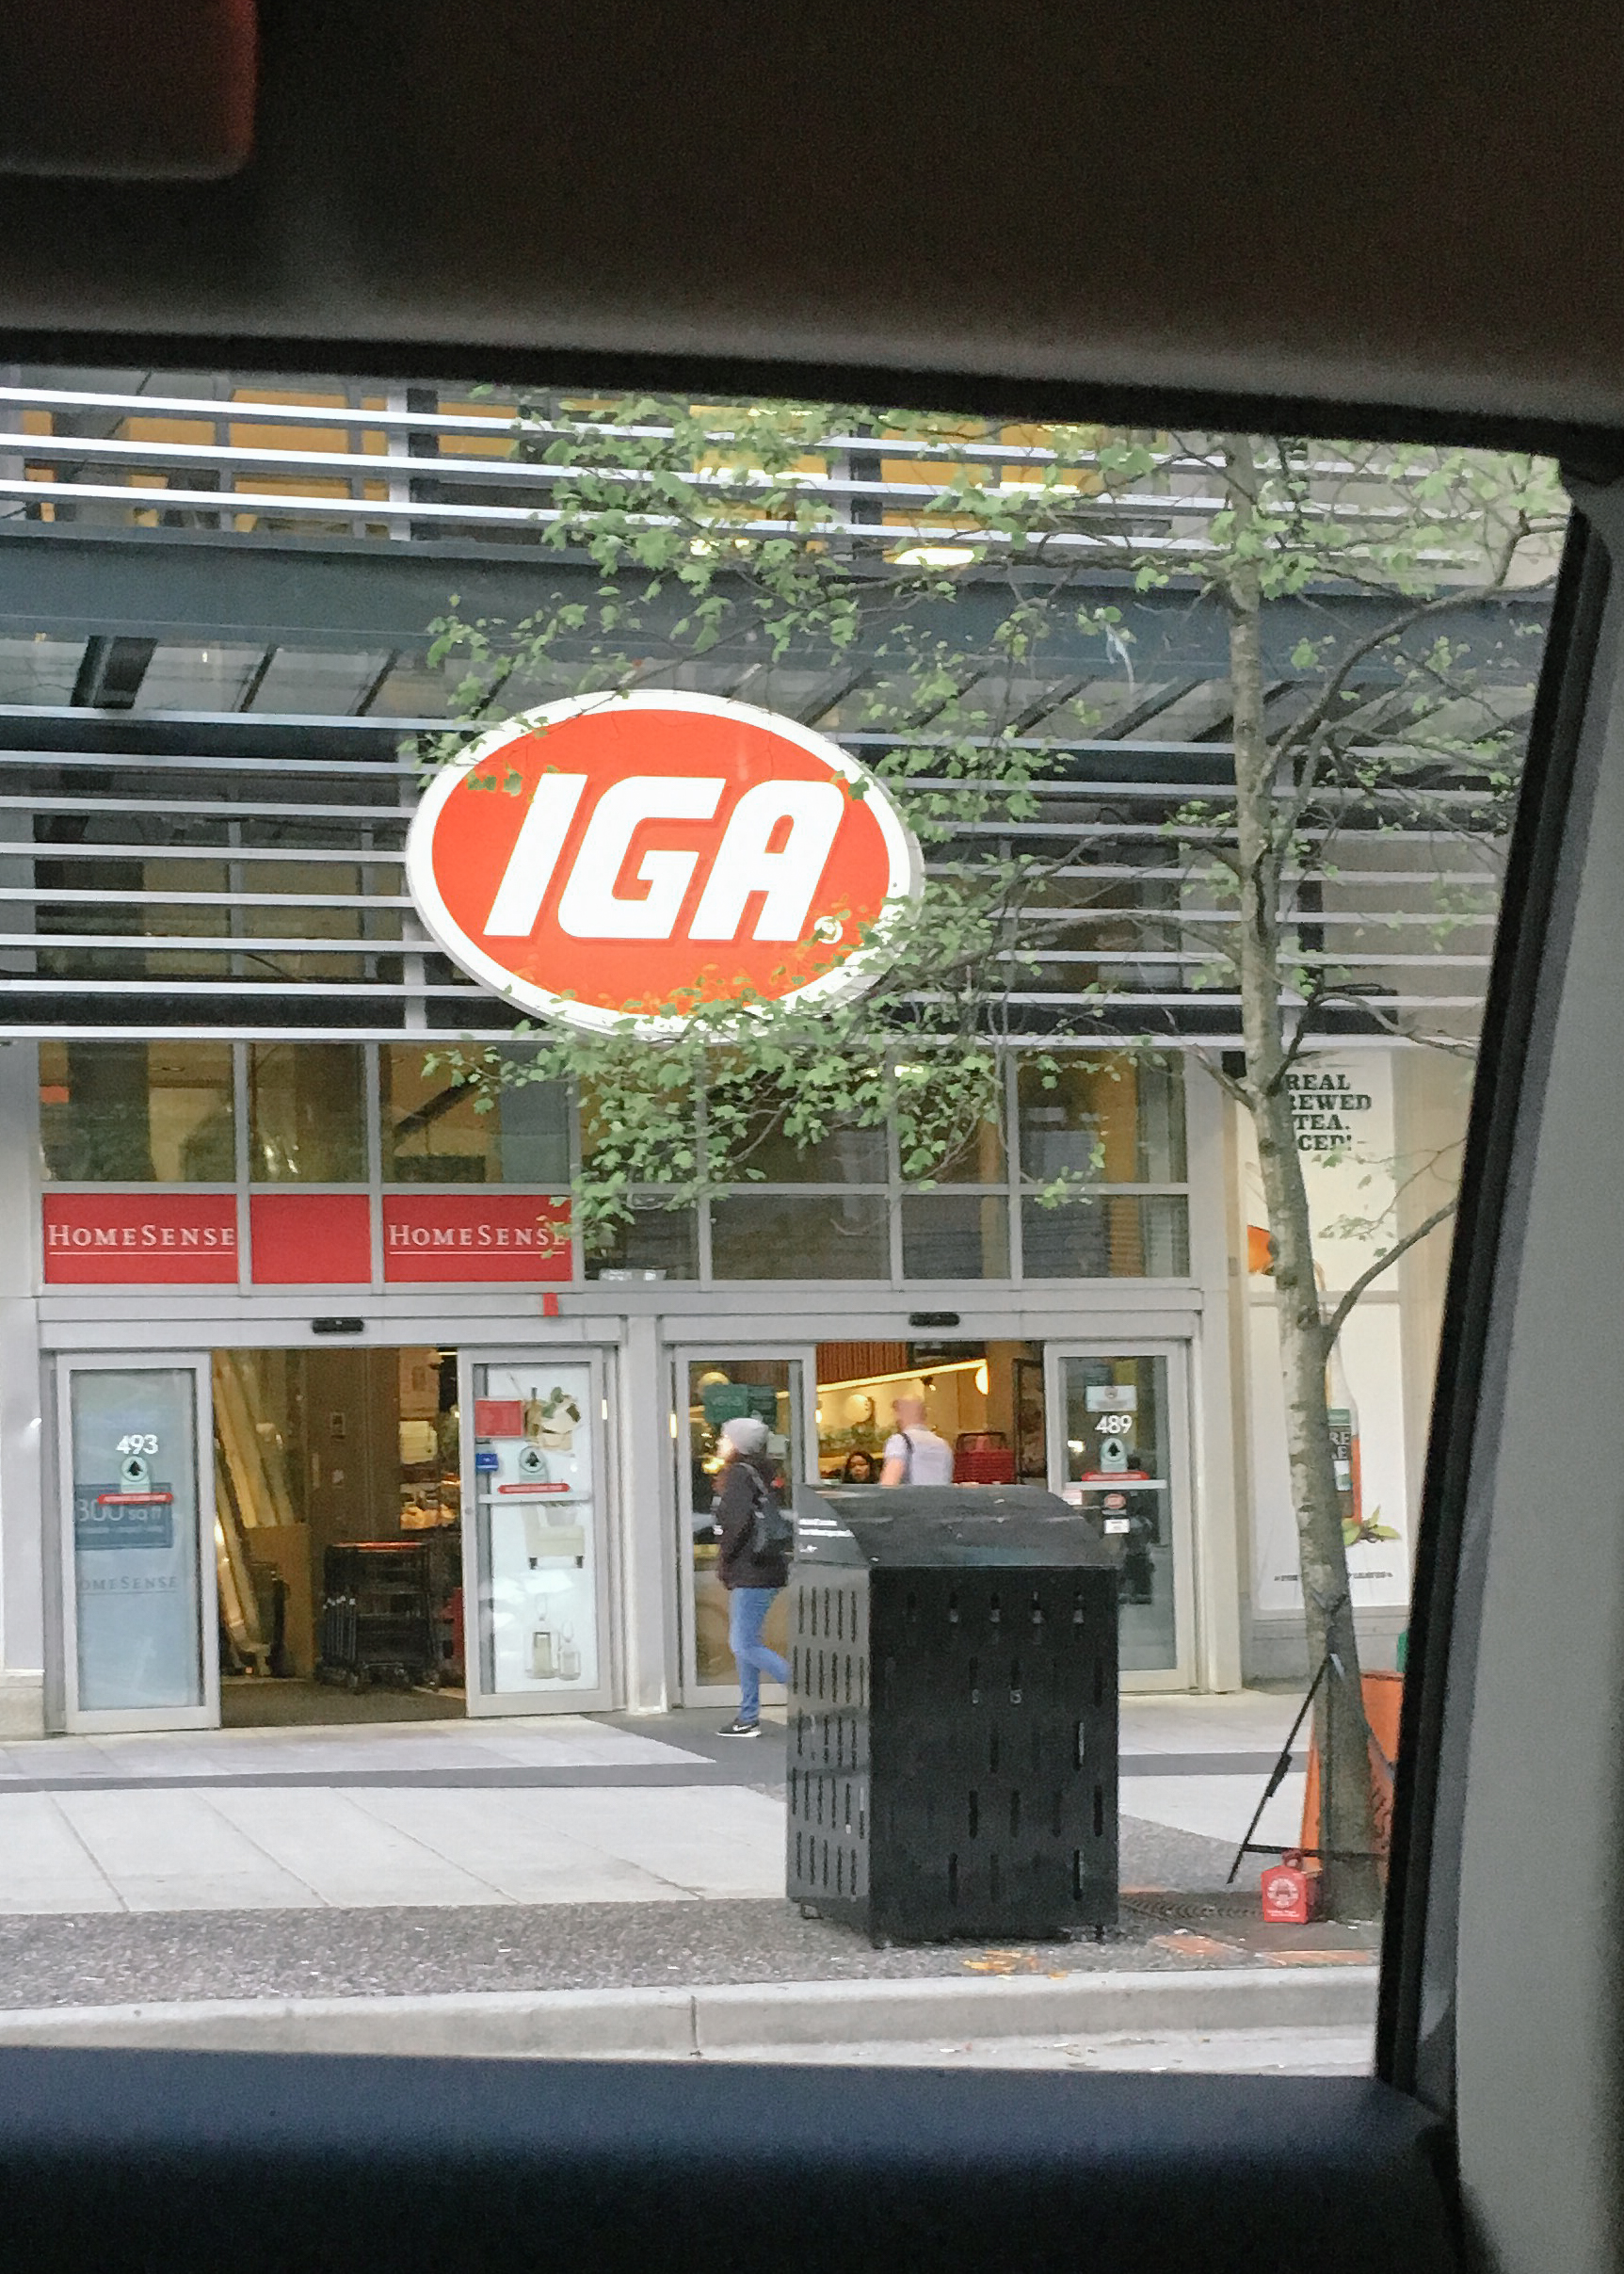 Was adamant that IGA was Australian... turns out it's not. SMH. All their ads have lied to us.